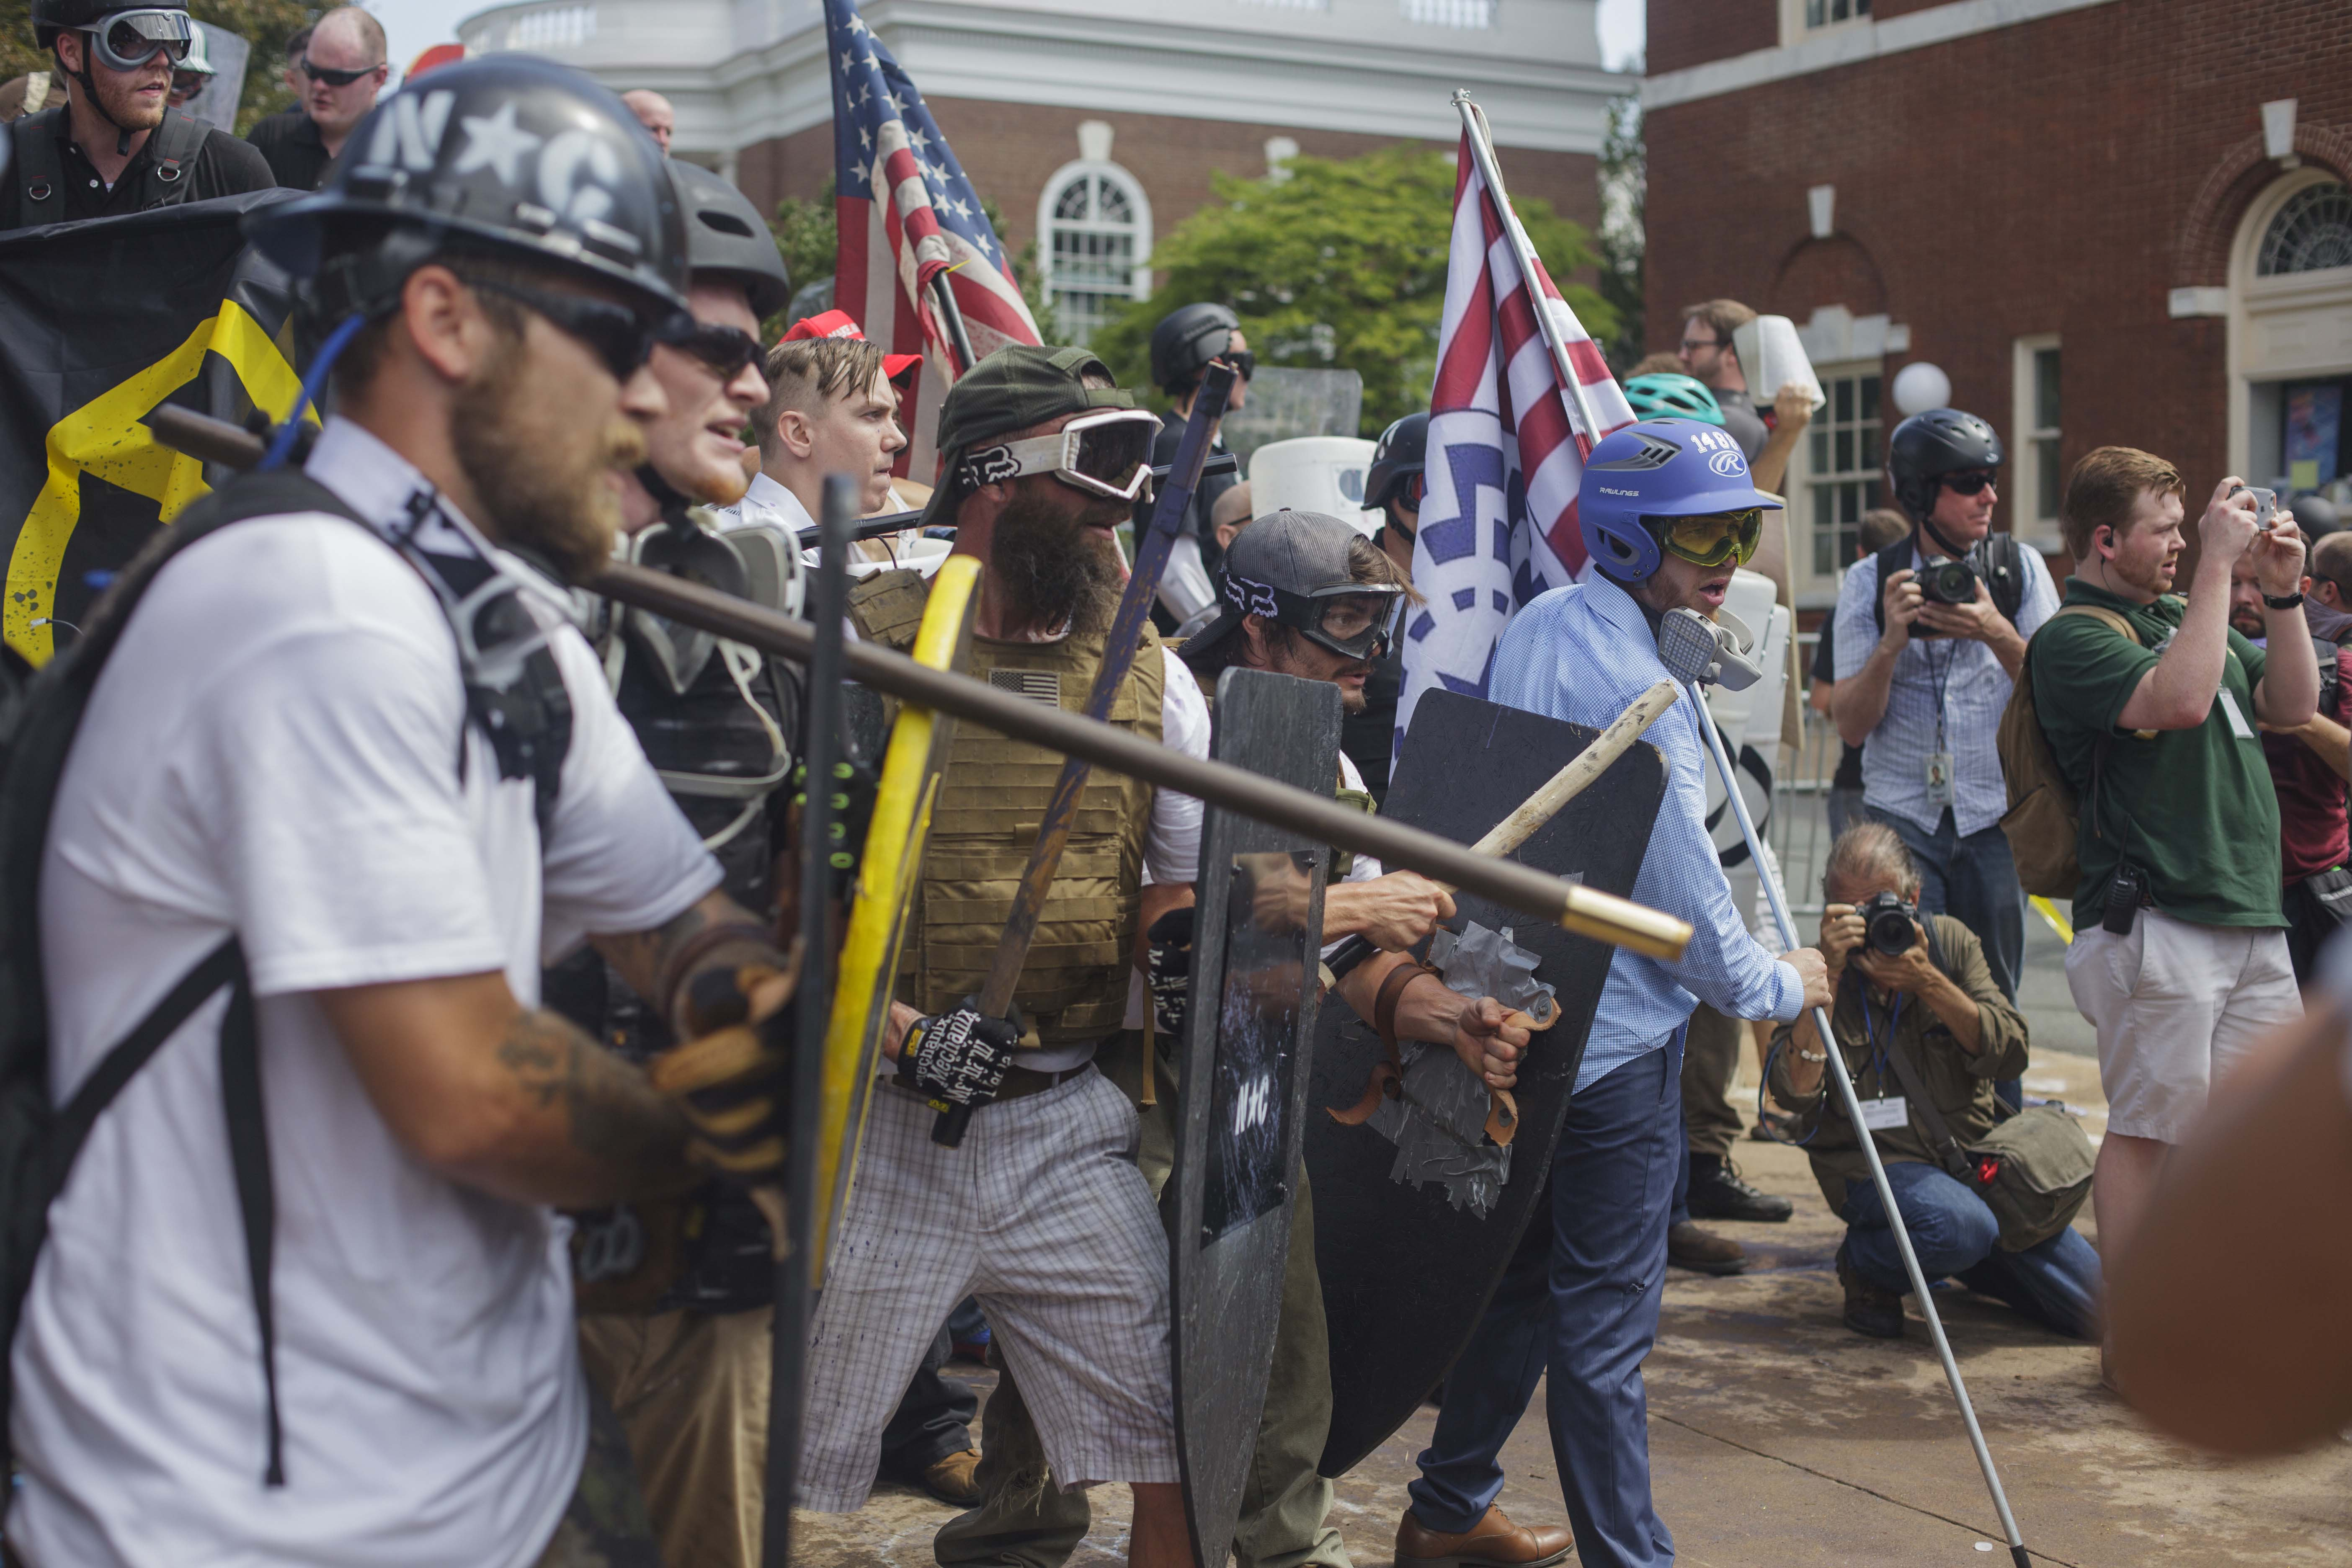 White Supremacist used shields, flagpoles and mace as weapons against the Antifa. August 12, 2017 Charlottesville, VA. (Shay Horse/GroundTruth)